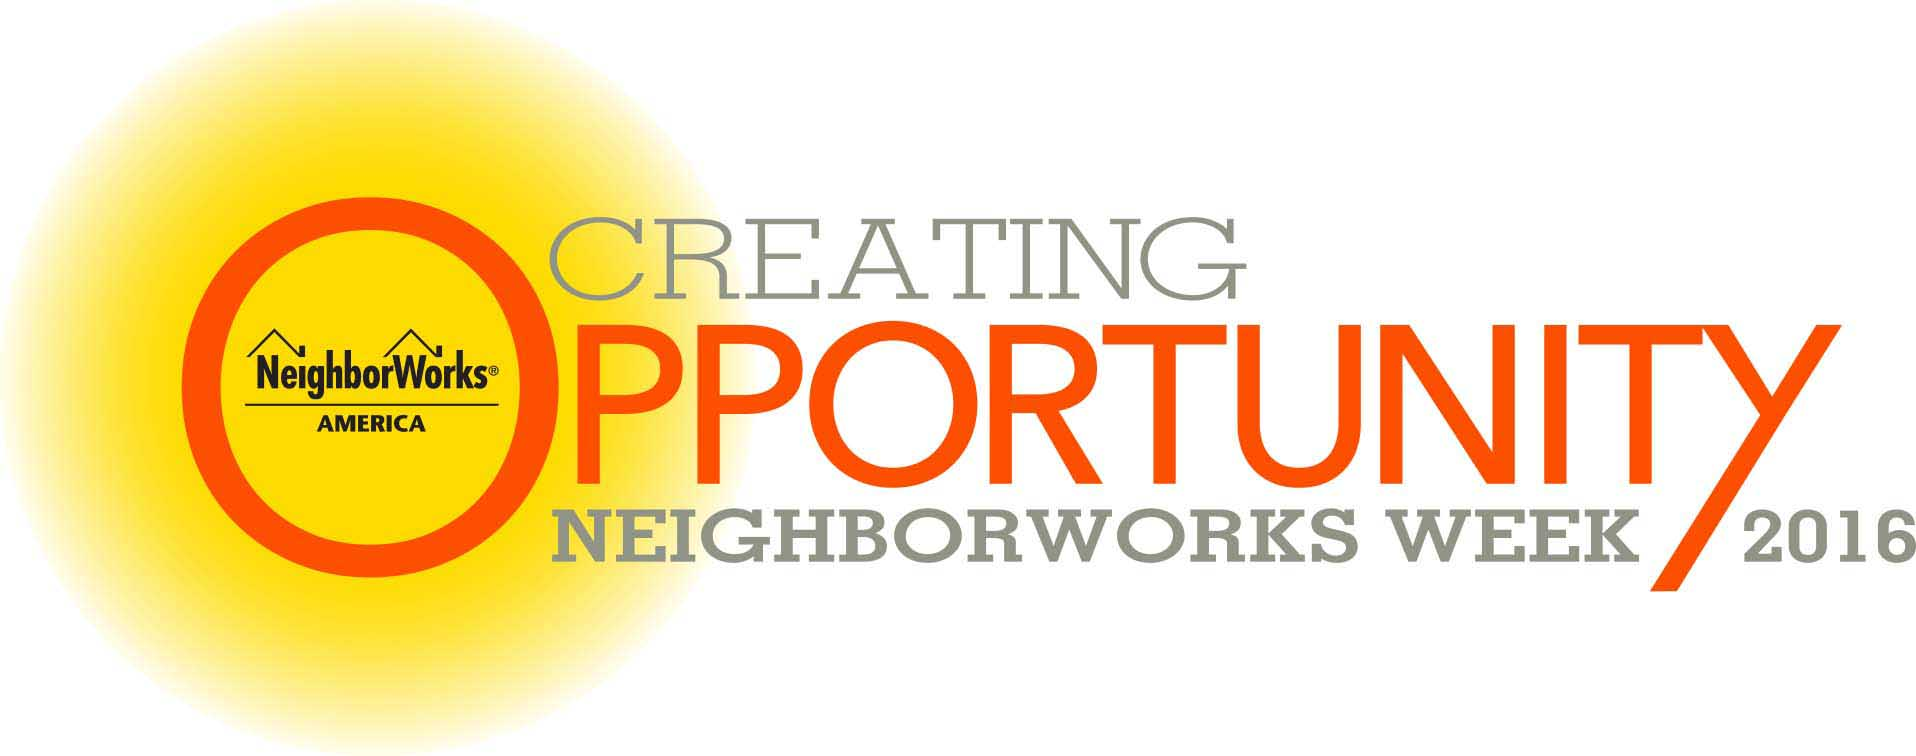 NeighborWorks Week logo